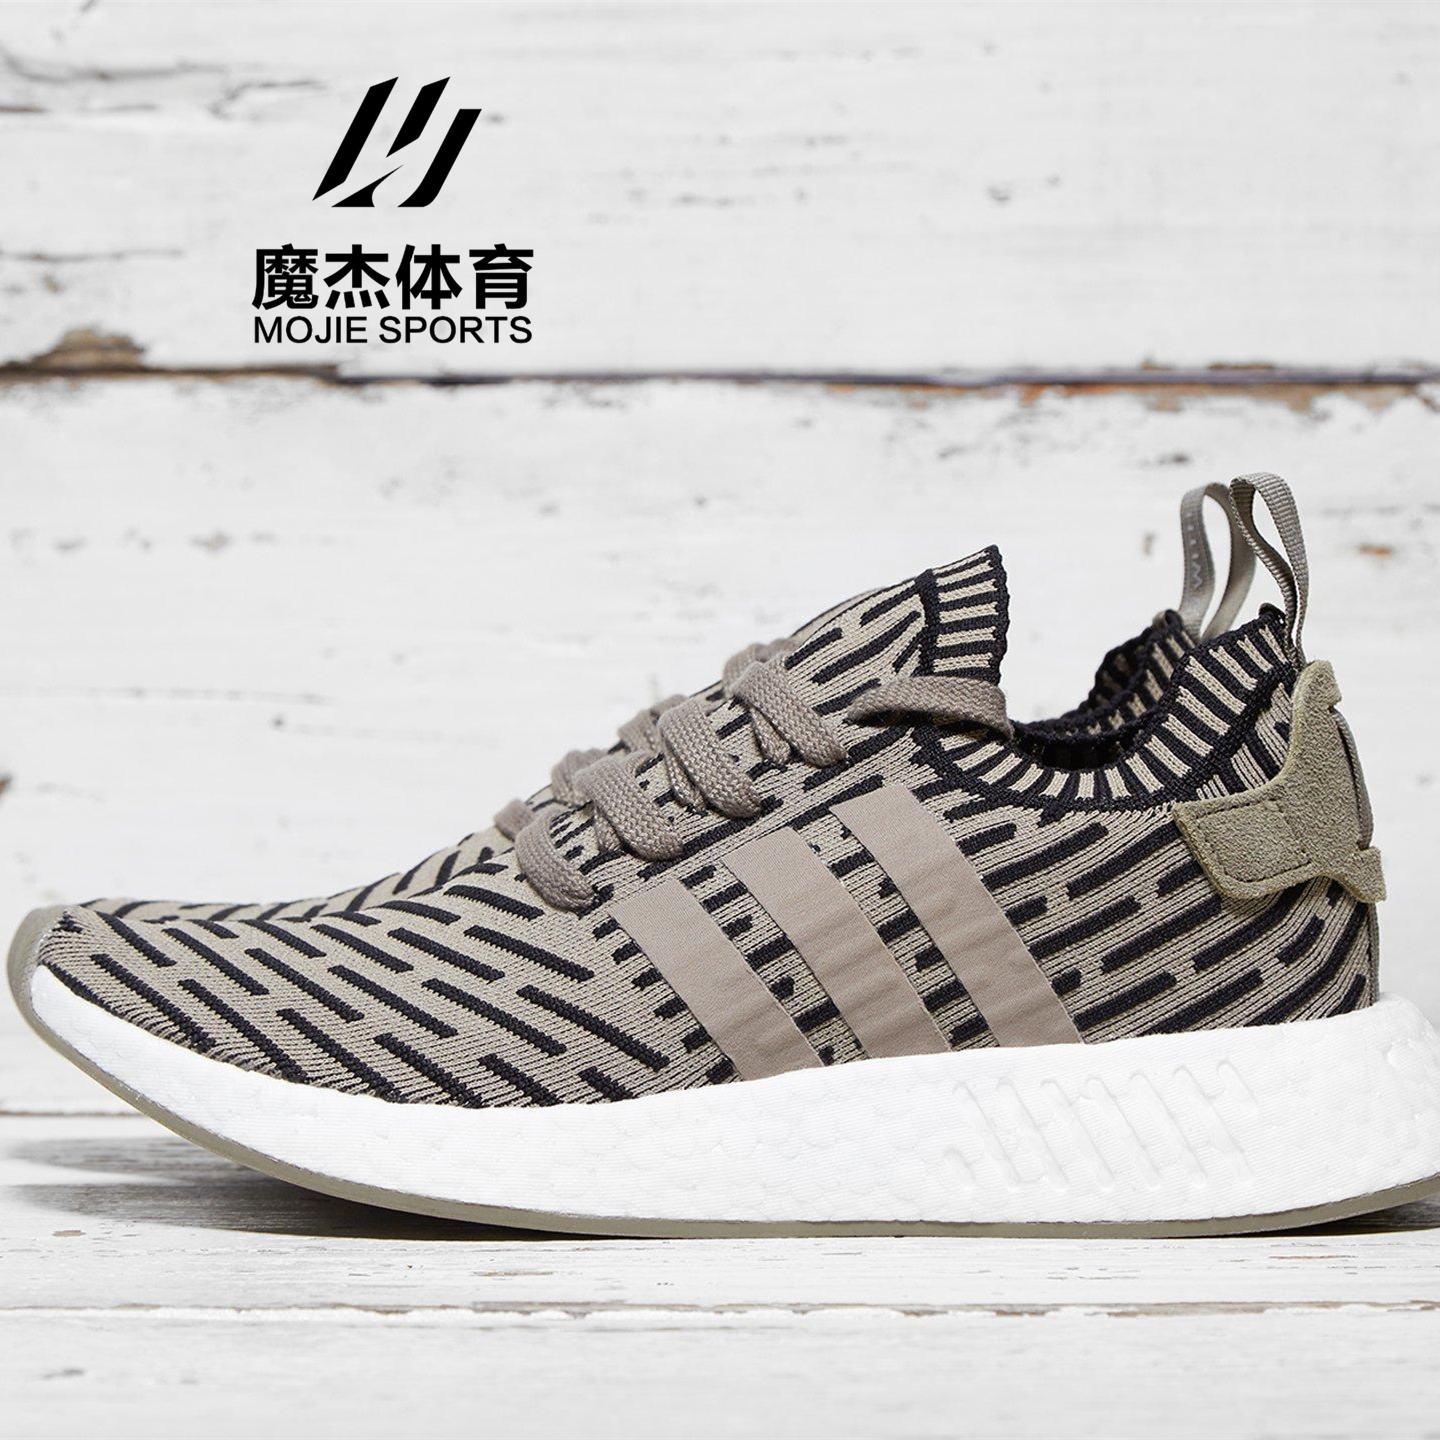 adidas nmd r2 in Sydney Region, NSW Australia Free Local